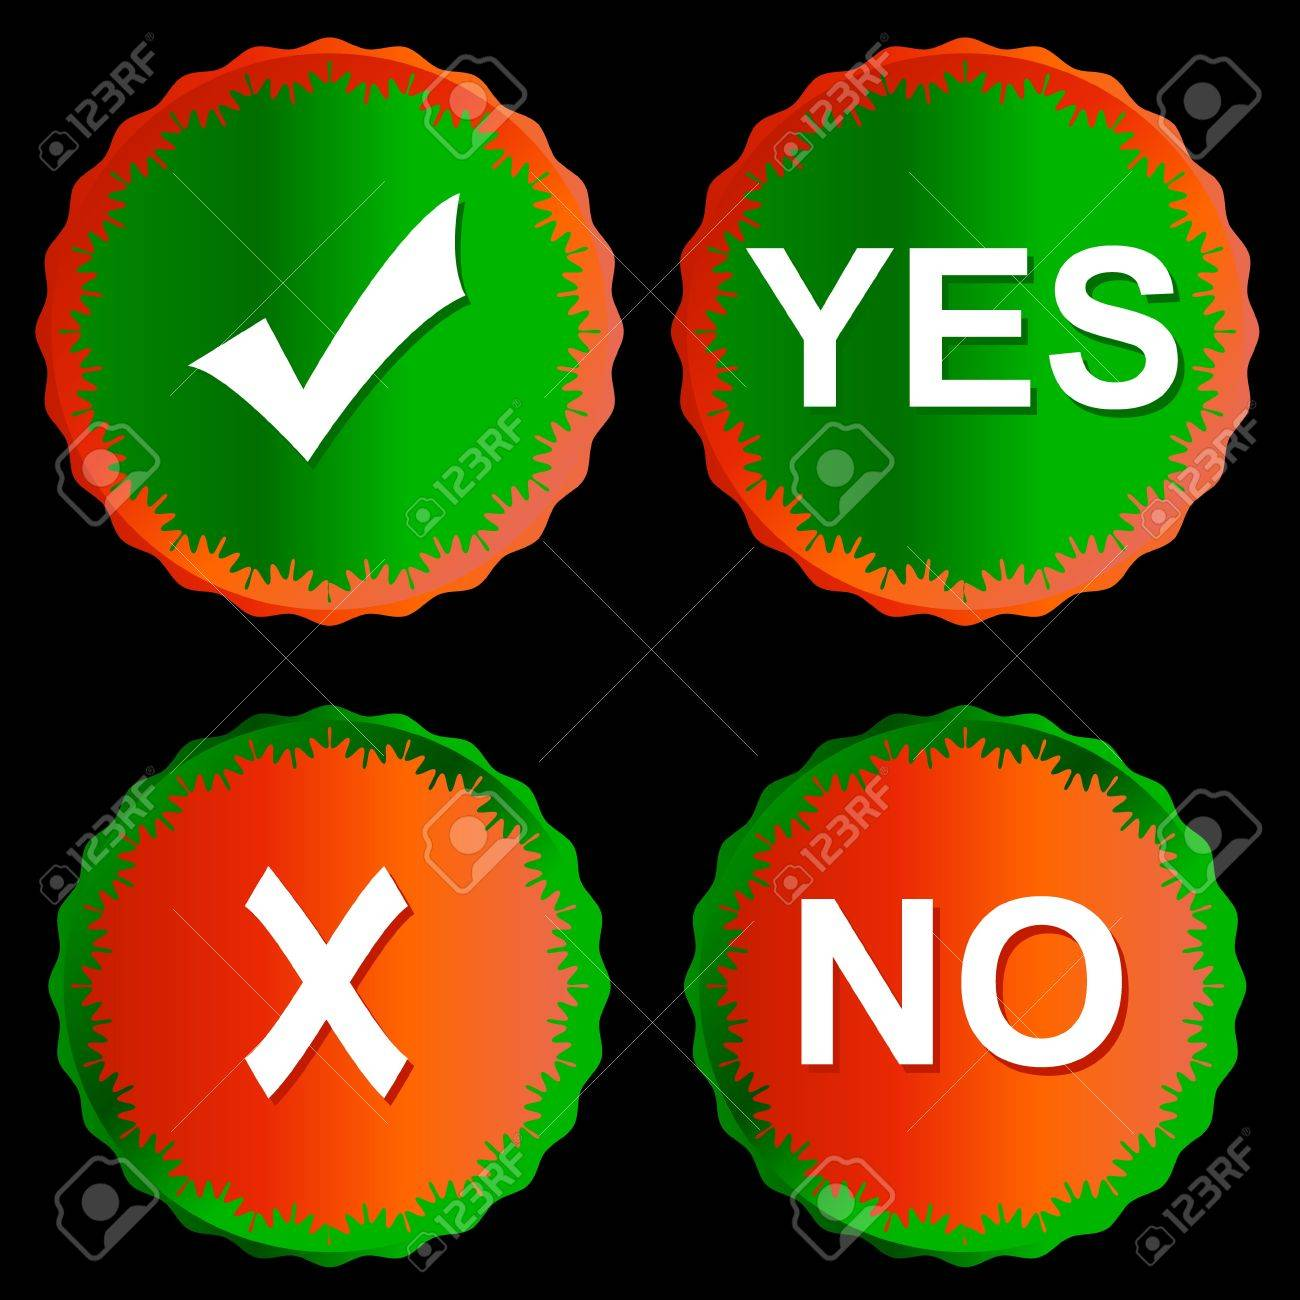 Buttons yes and no on a black background Stock Vector - 14589437